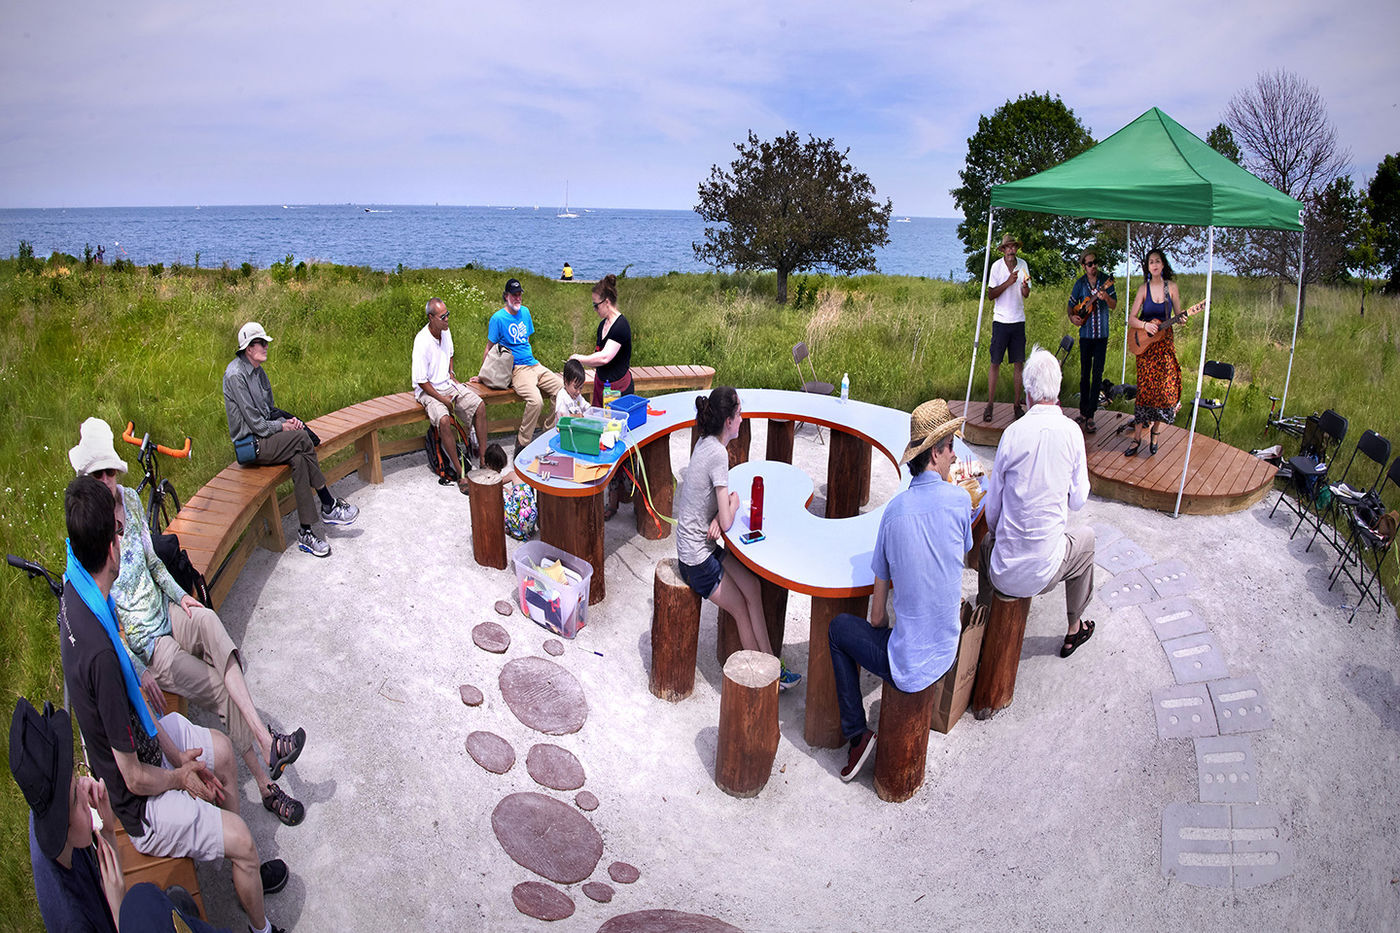 A group of people sit around a spiral shaped installation, watching three musicians perform on a small stage with Lake Michigan in the background.